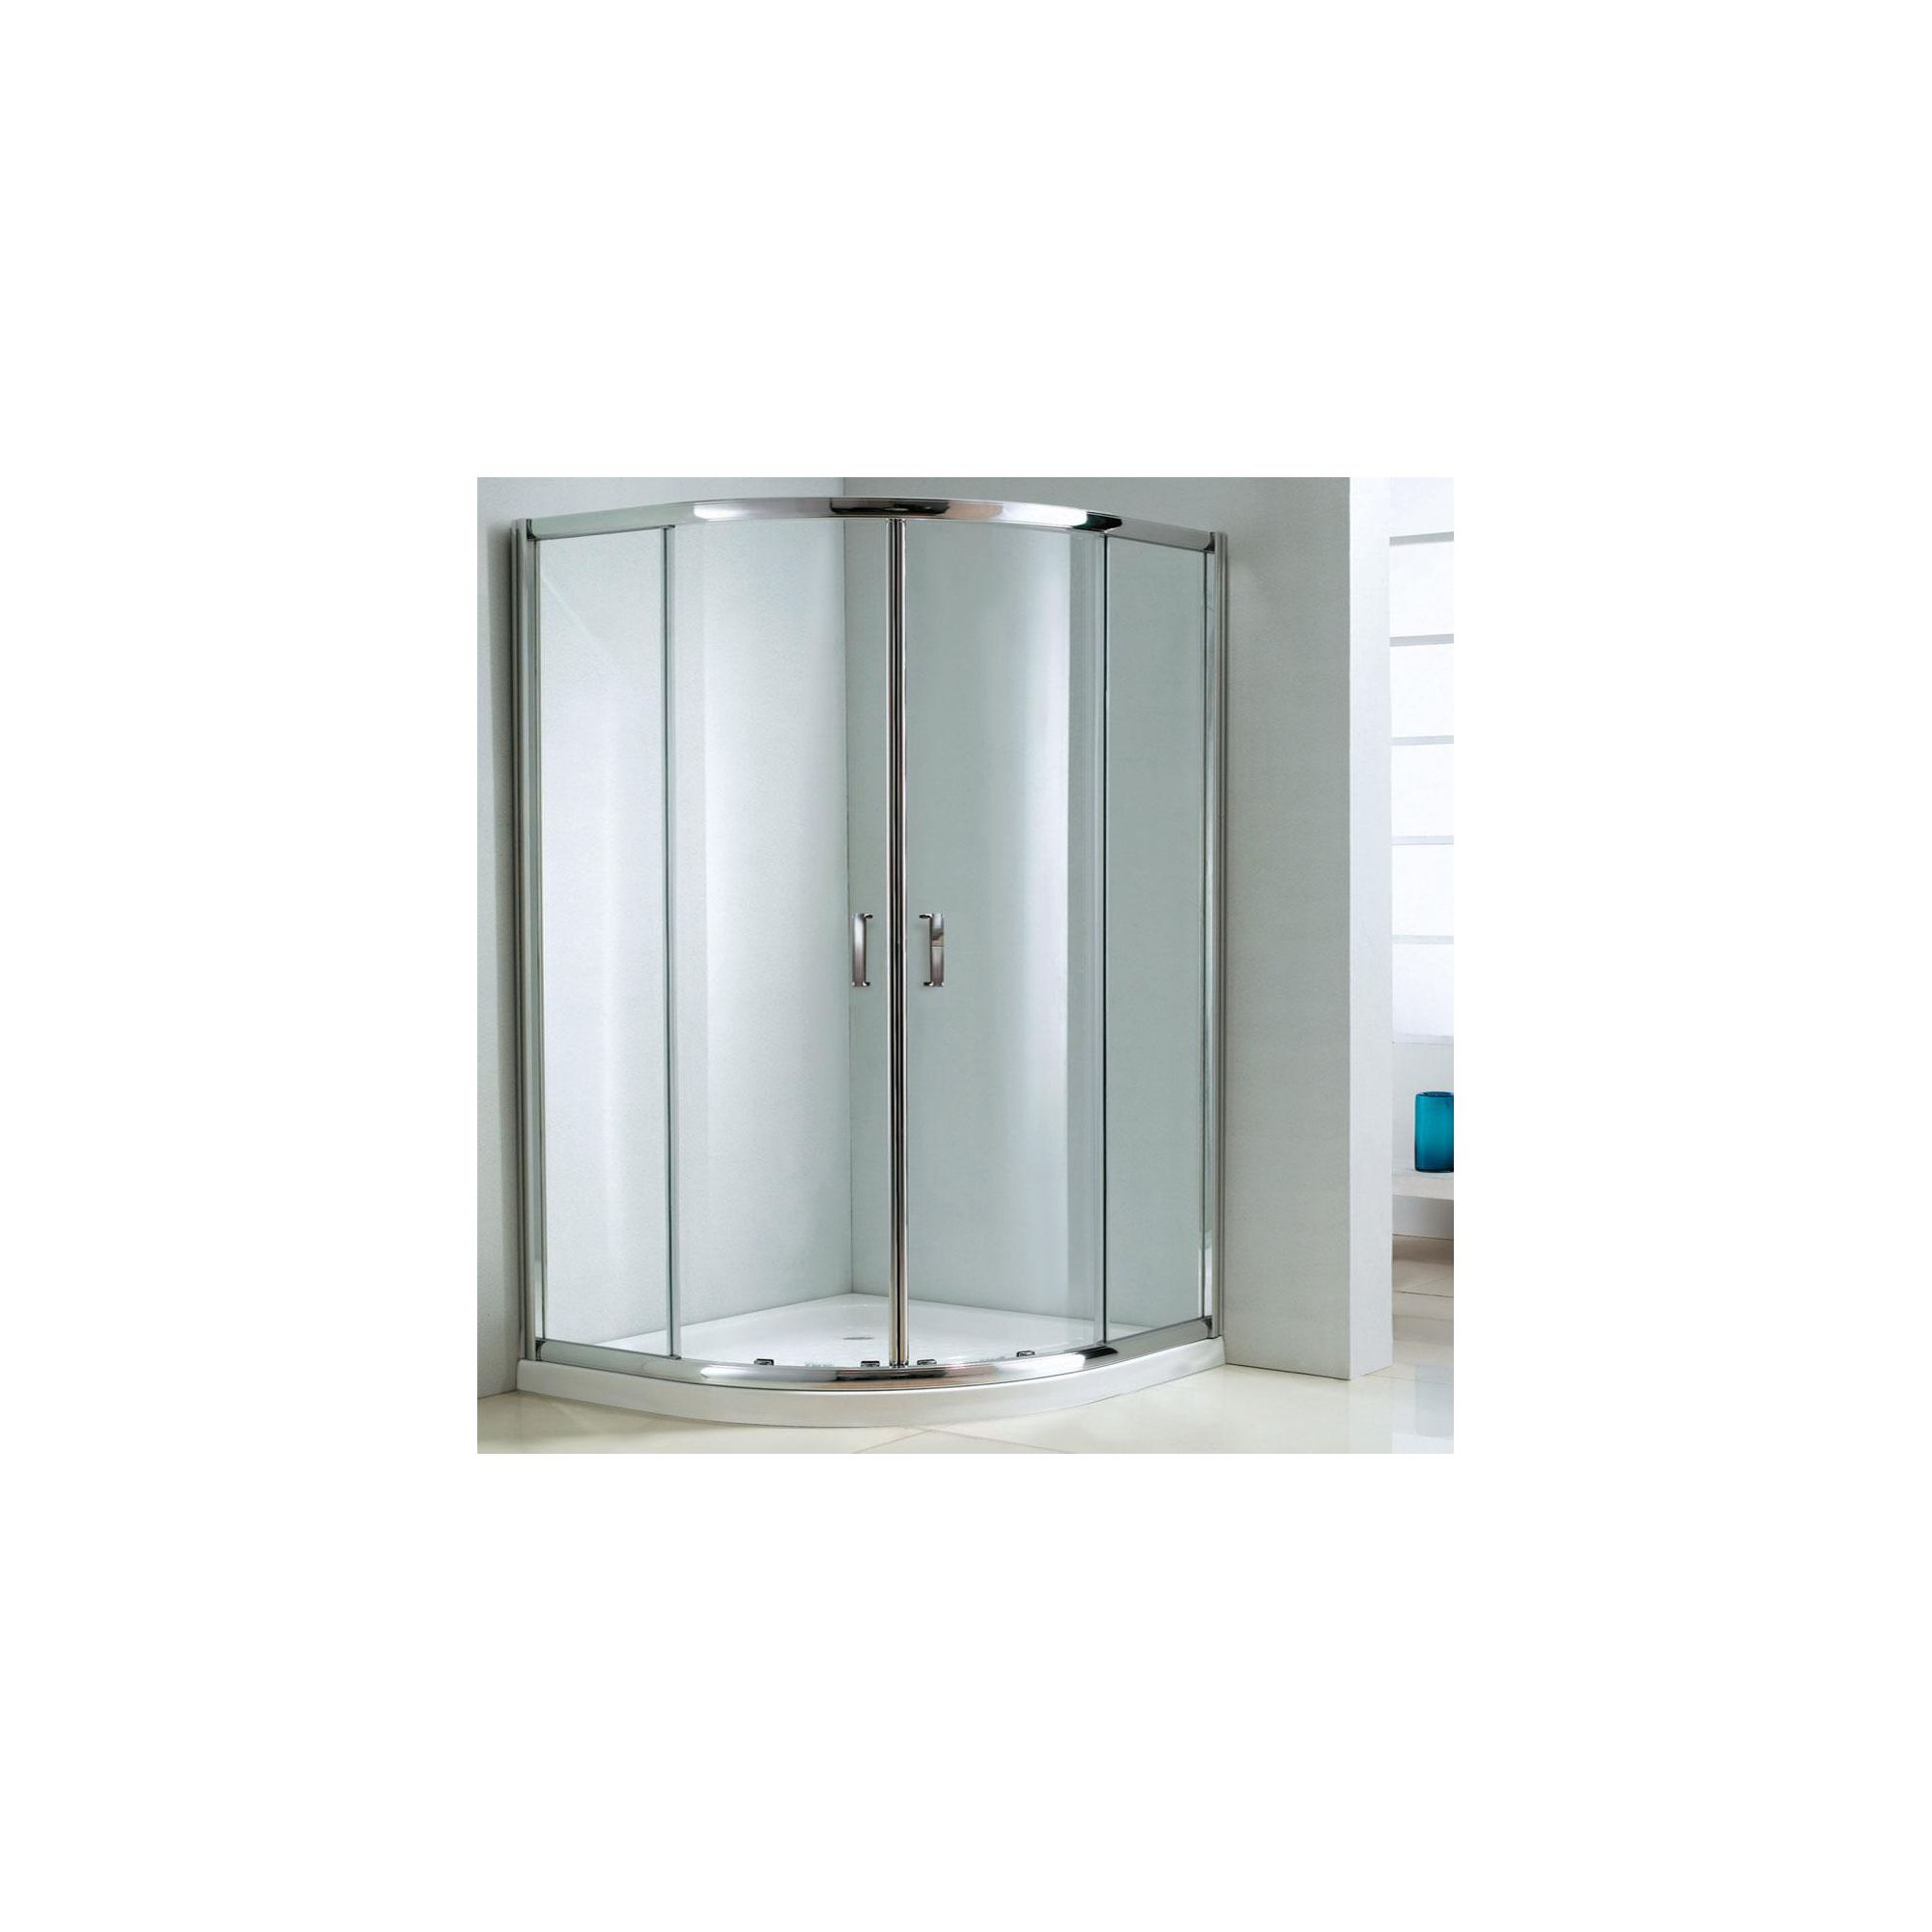 Duchy Style Double Quadrant Door Shower Enclosure, 1000mm x 1000mm, 6mm Glass, Low Profile Tray at Tesco Direct